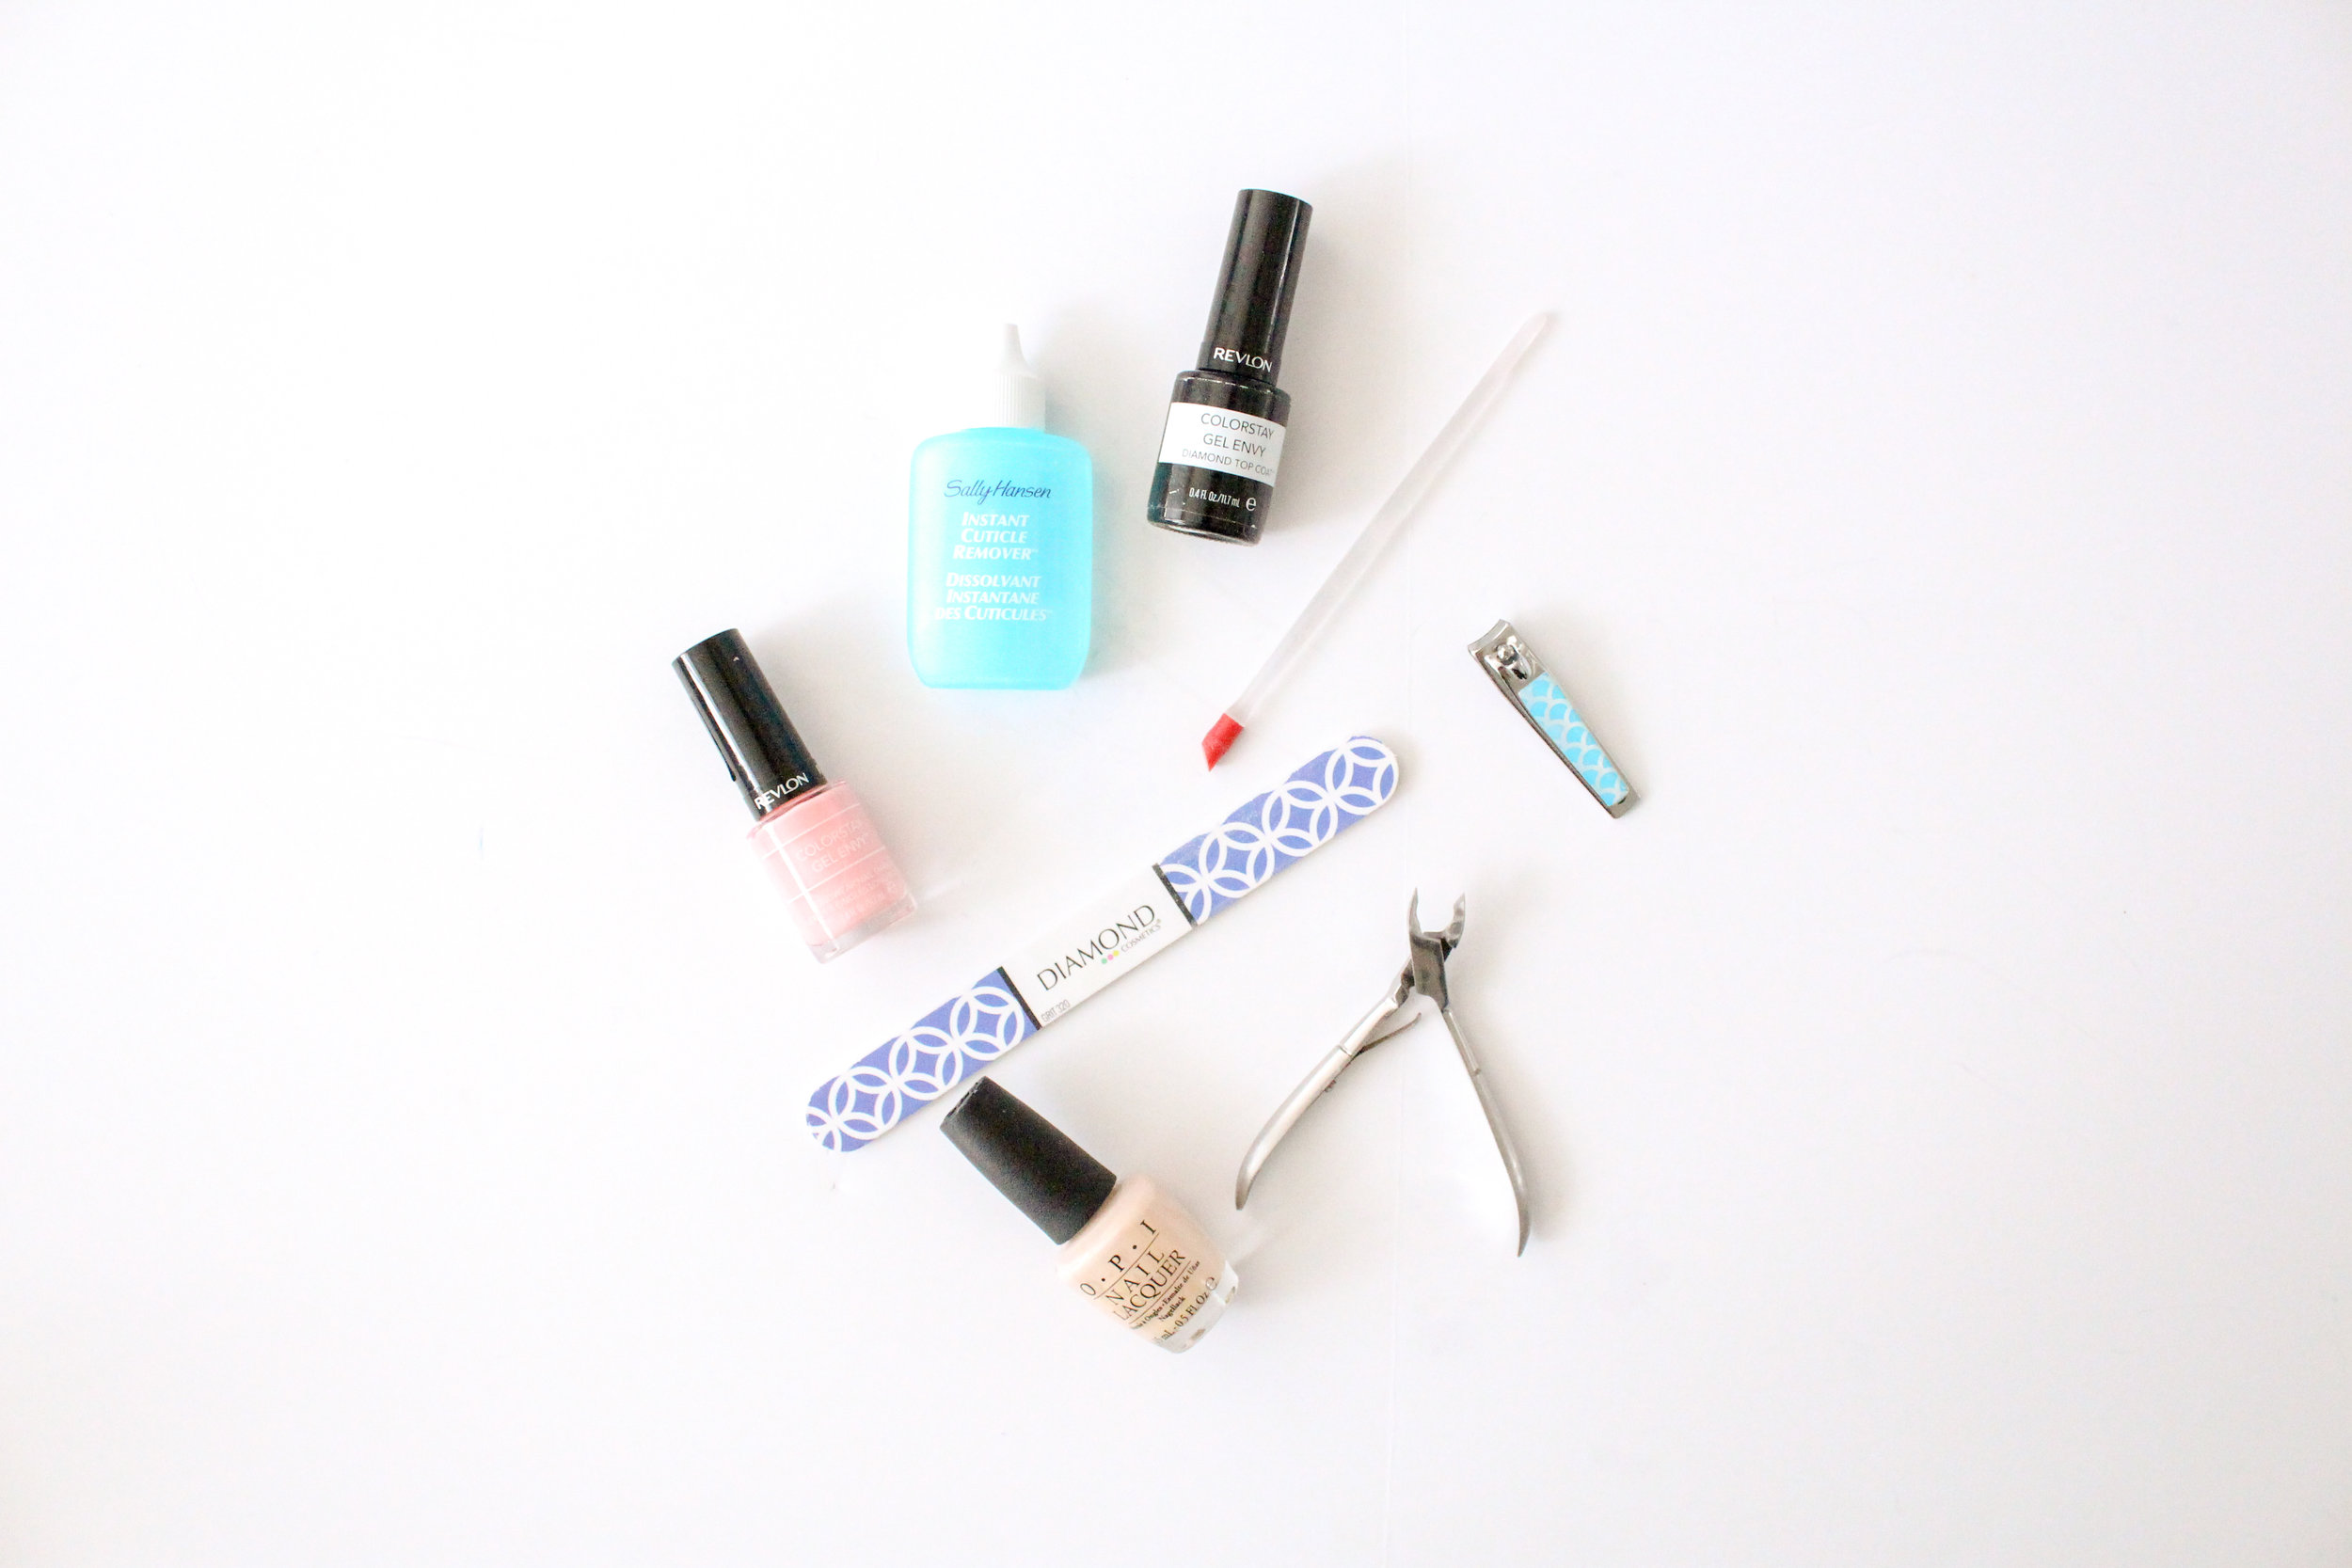 Self care box with manicure products